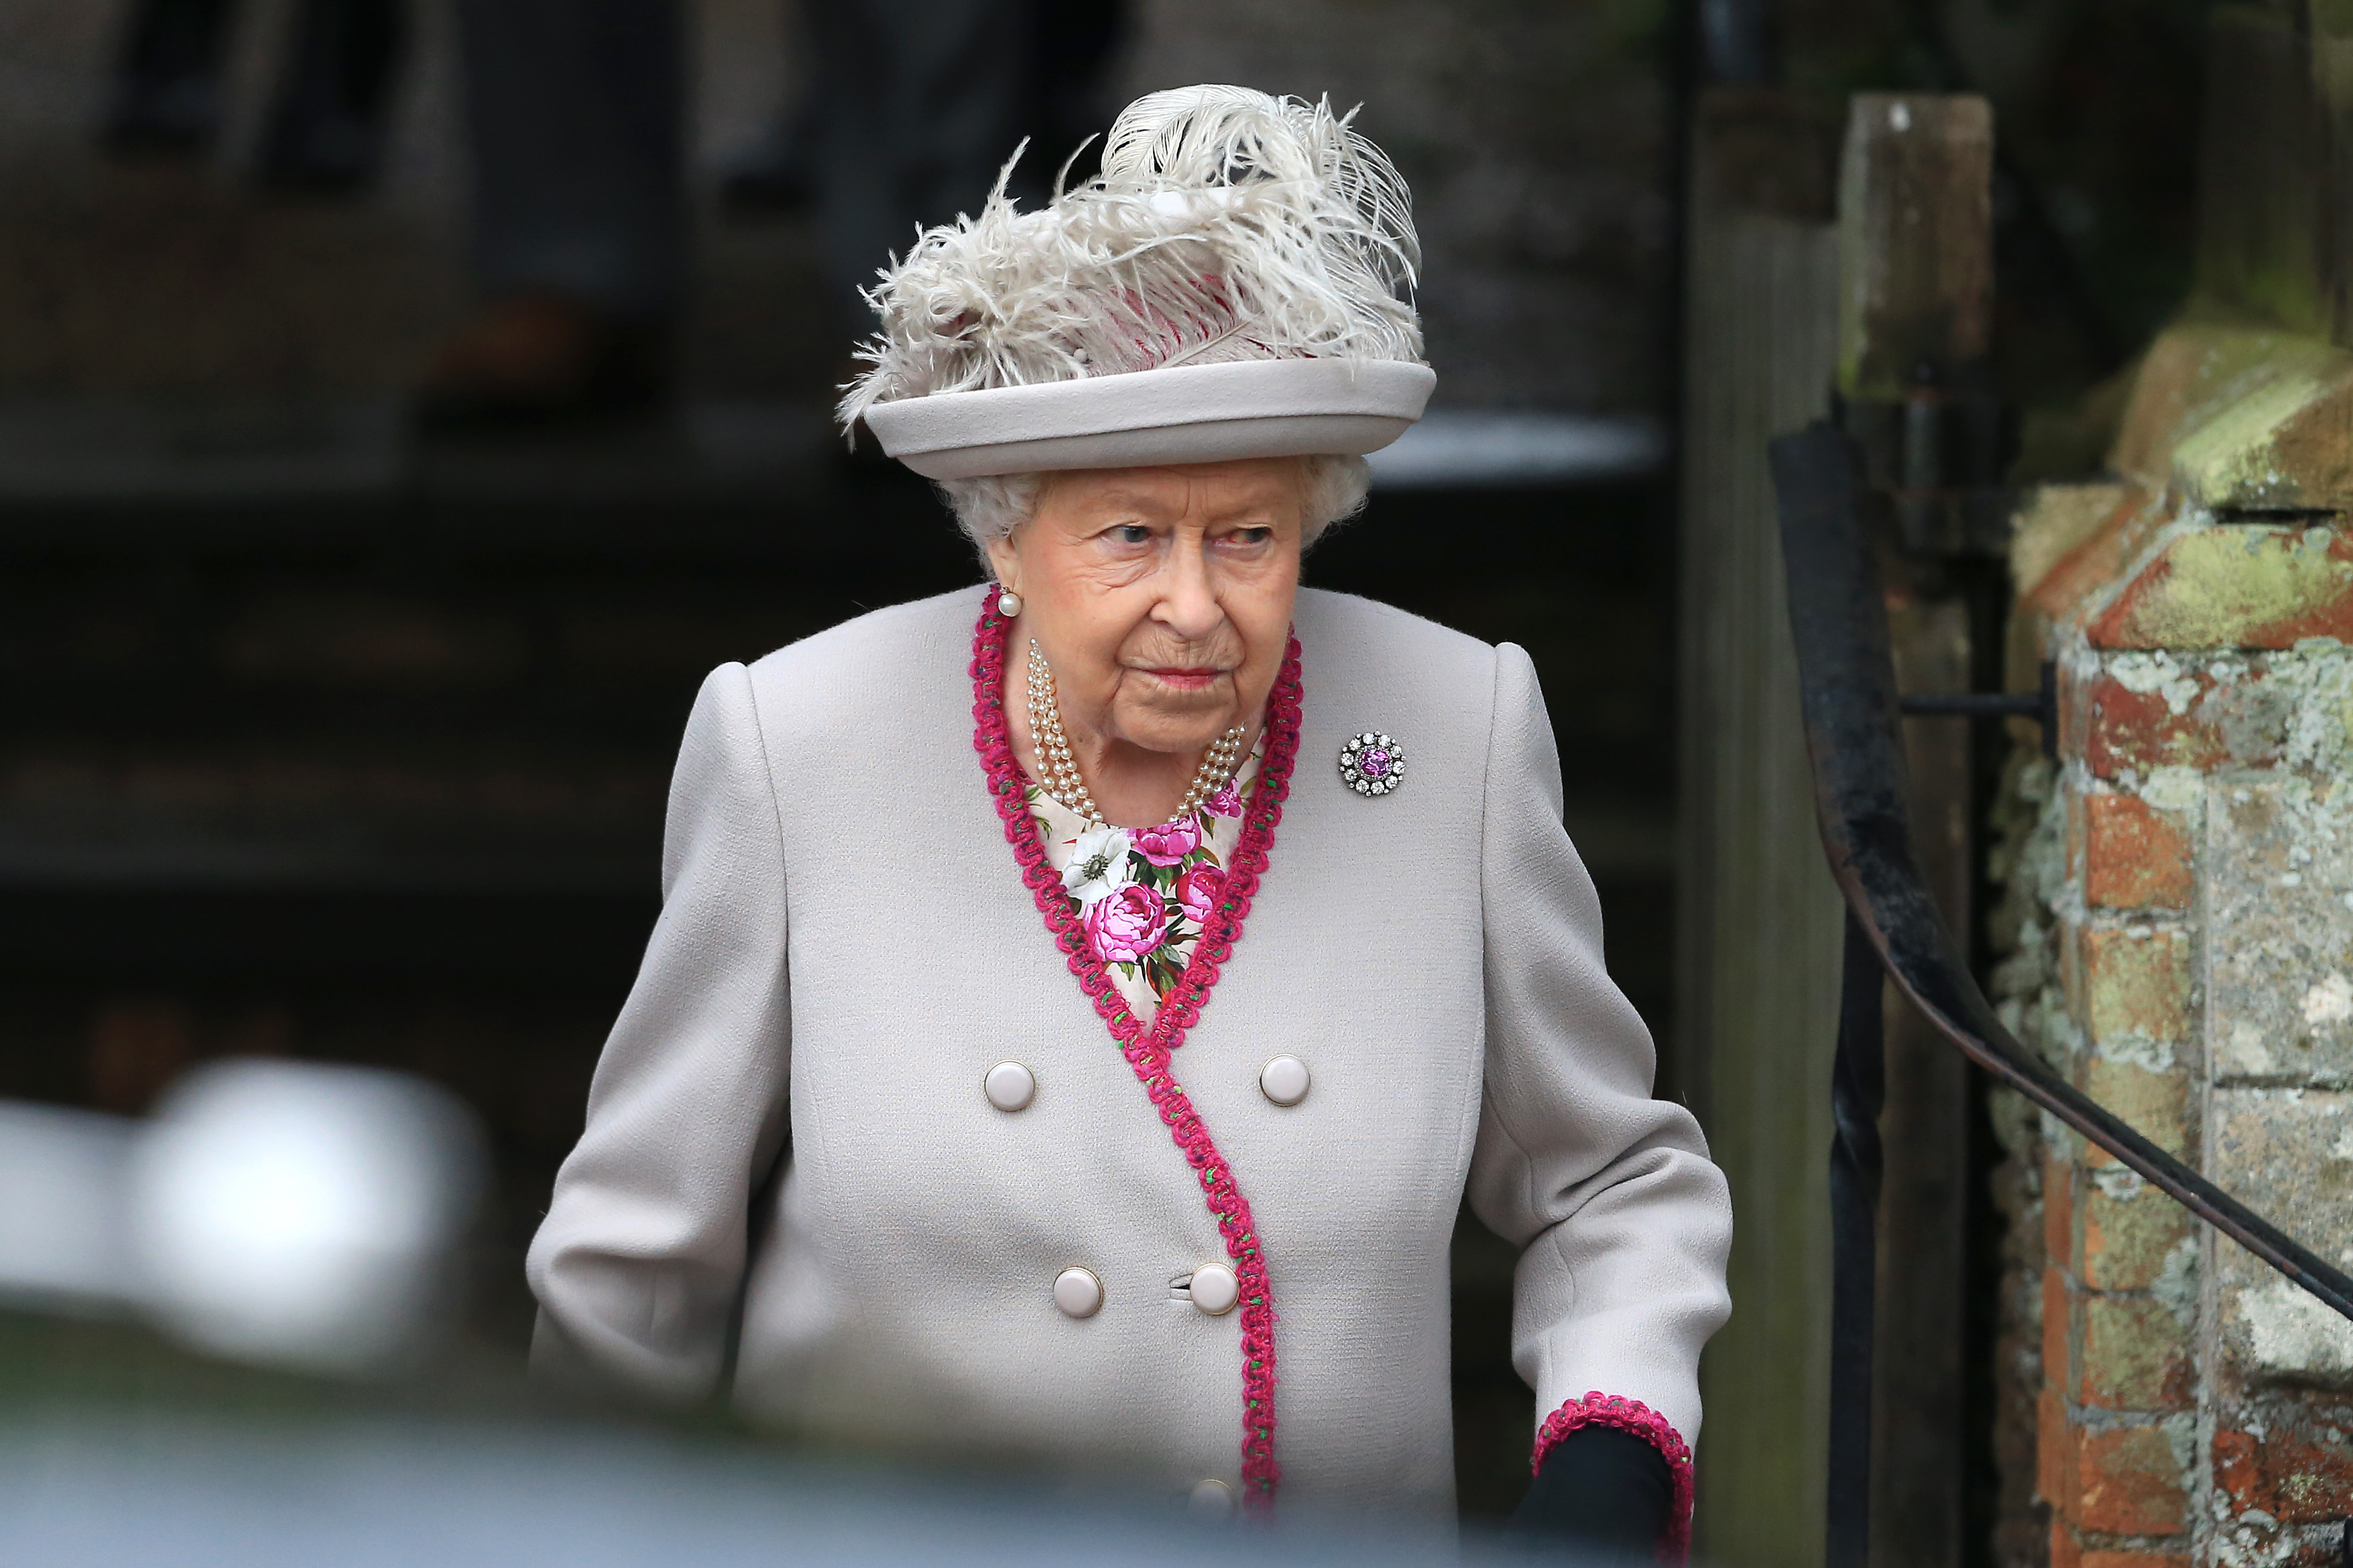 Queen Elizabeth II departs the Christmas Day Church service at on the Sandringham estate on December 25, 2018 in King's Lynn, England.